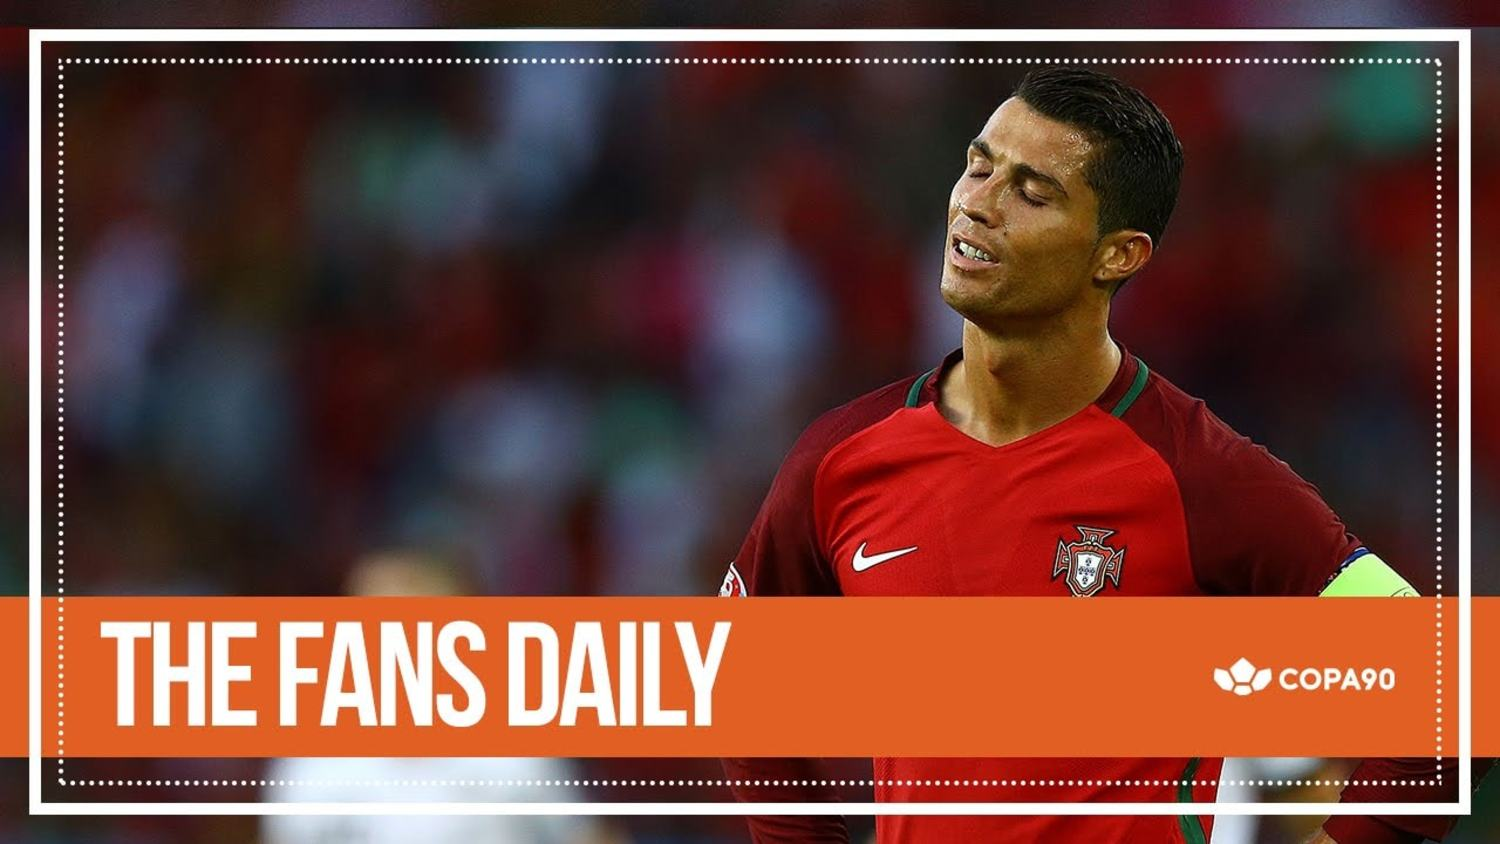 Has Ronaldo Blown It For Portugal? - The Fans Daily